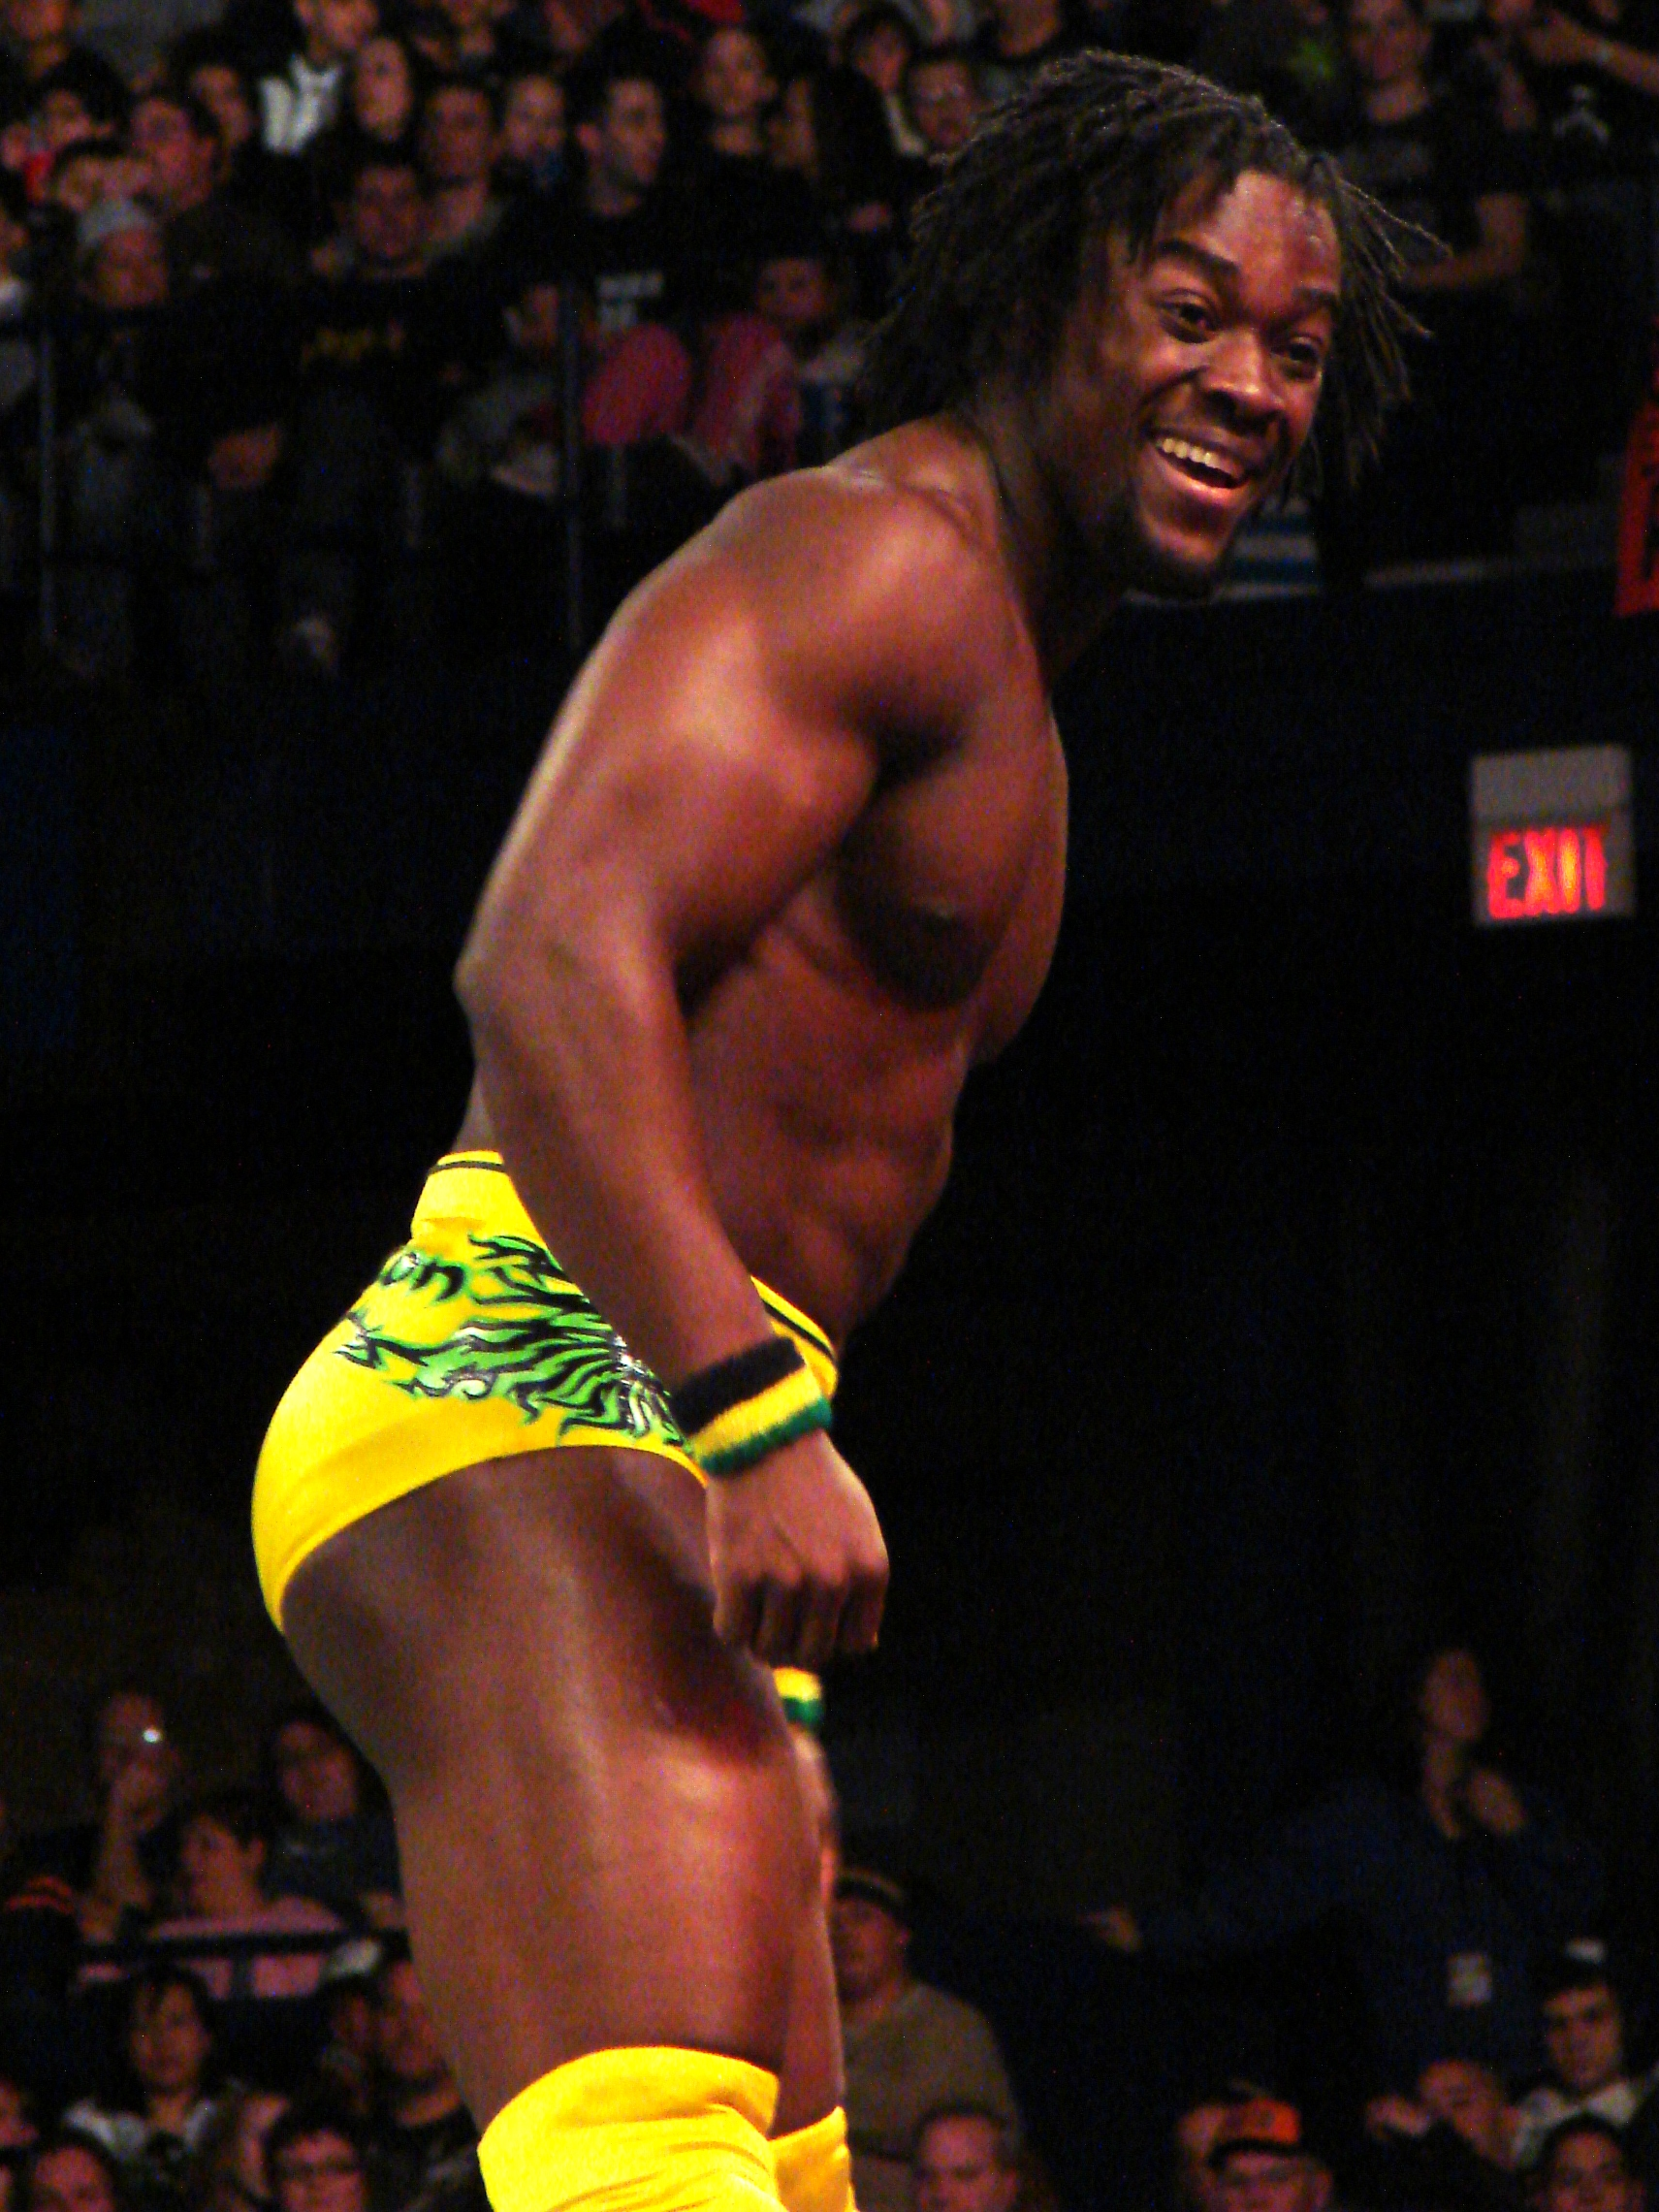 http://upload.wikimedia.org/wikipedia/commons/d/d8/Kofi_Kingston_Rosemont_IL_031108.jpg